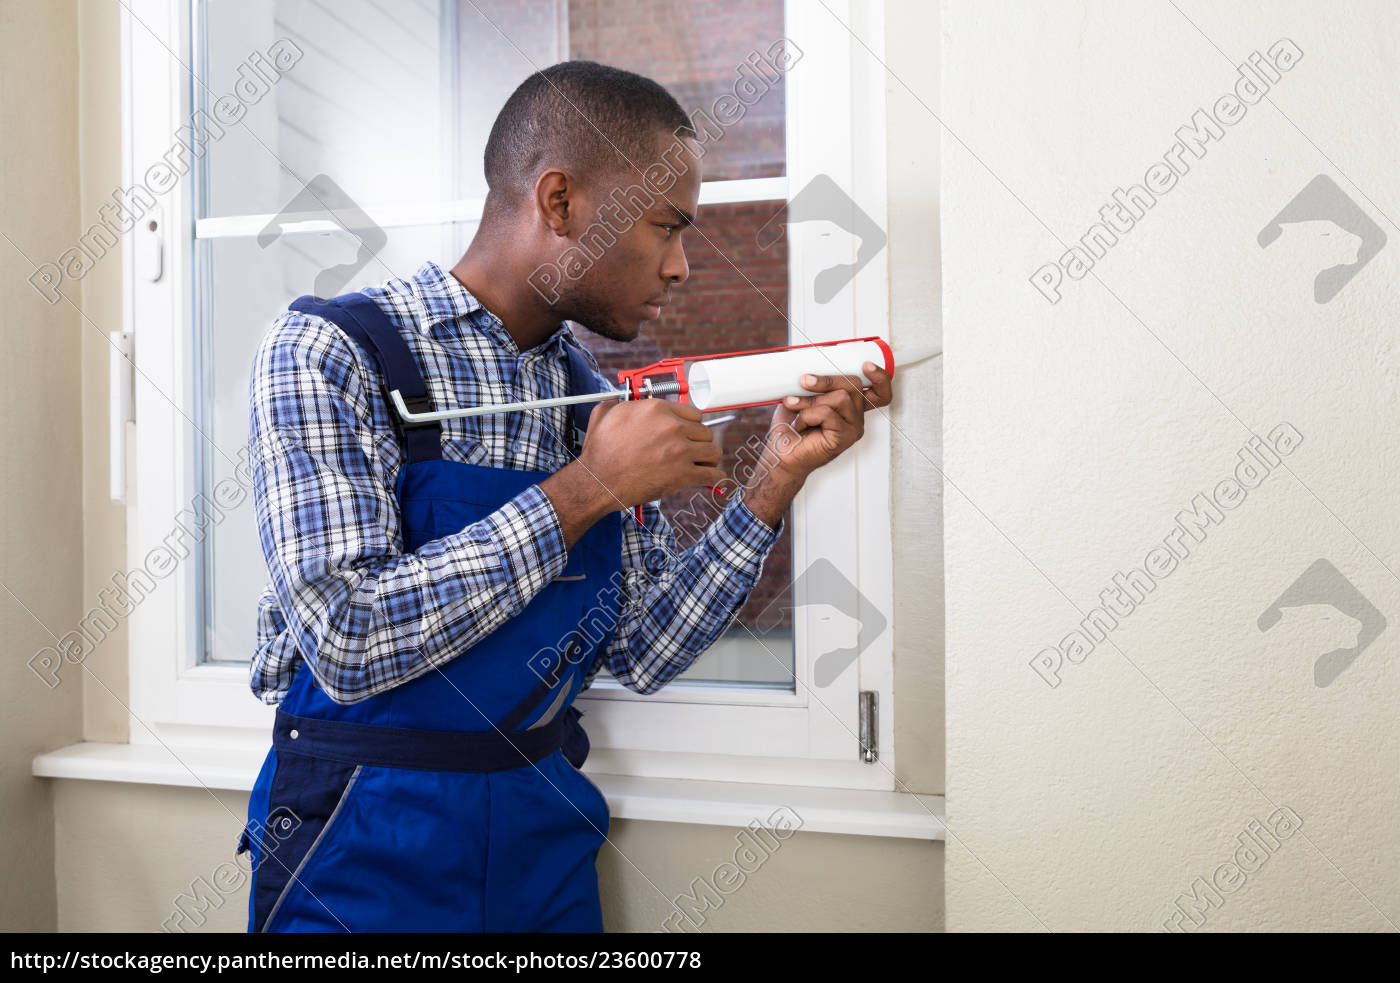 male, worker, applying, silicone, sealant - 23600778